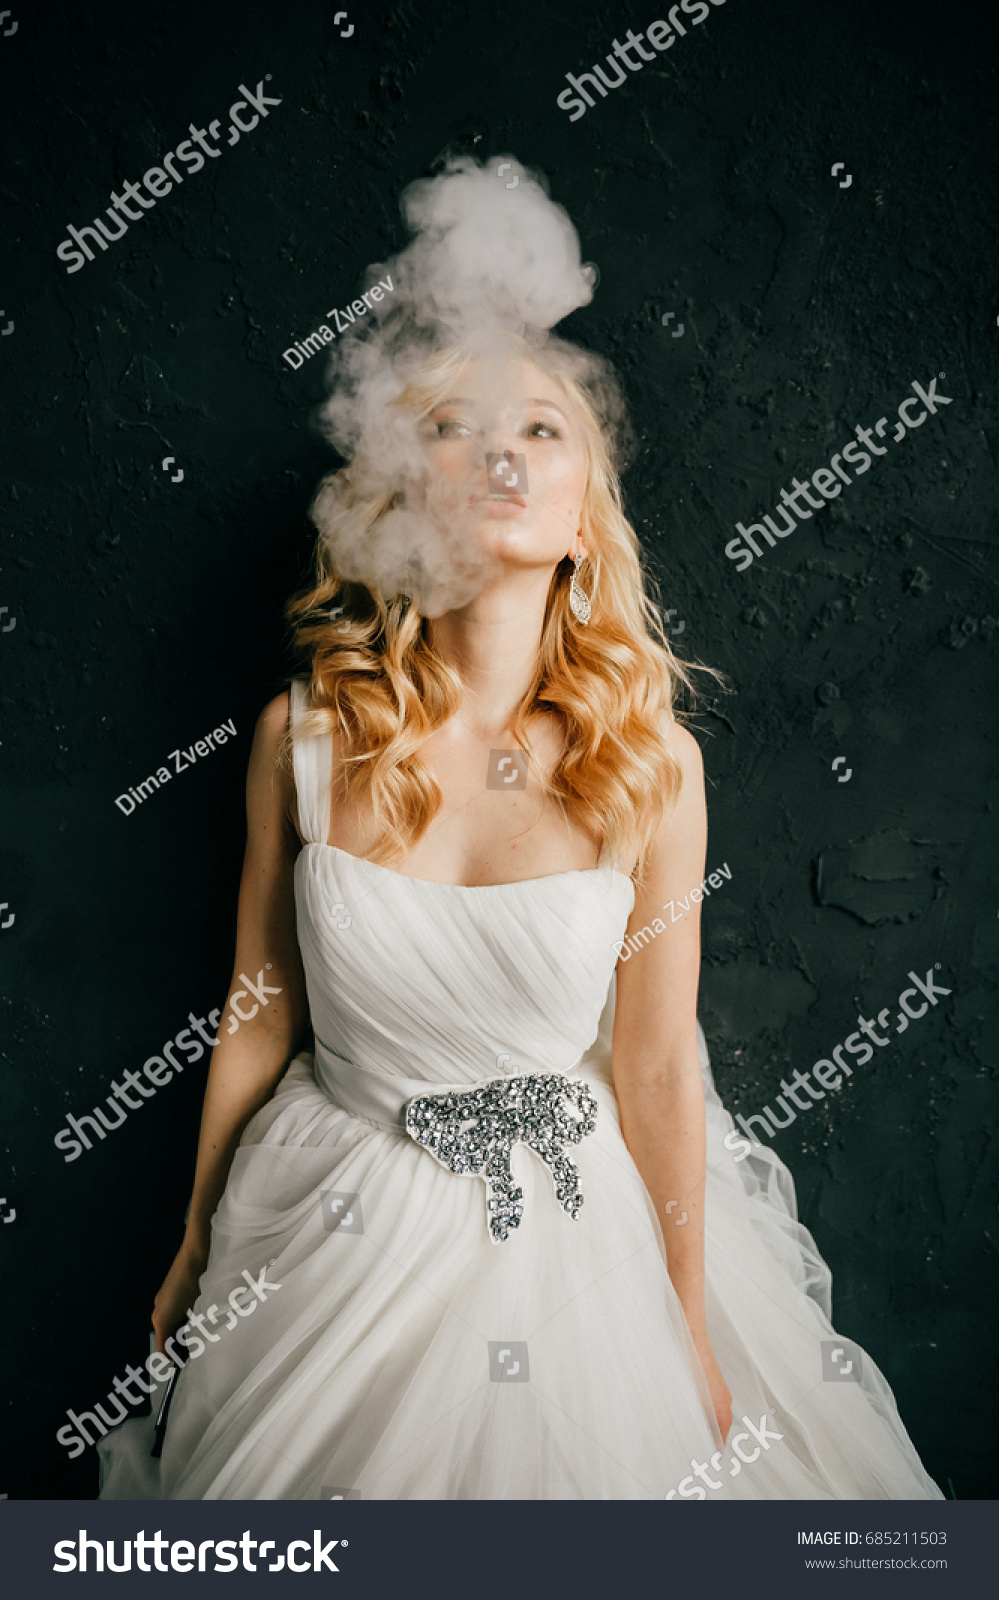 Beautiful Odd Blonde Bride With Curly Hairstyle In White Expensive Wedding Dress Smoking Electronic Cigarette: Smoking Brides Wedding Dress At Websimilar.org